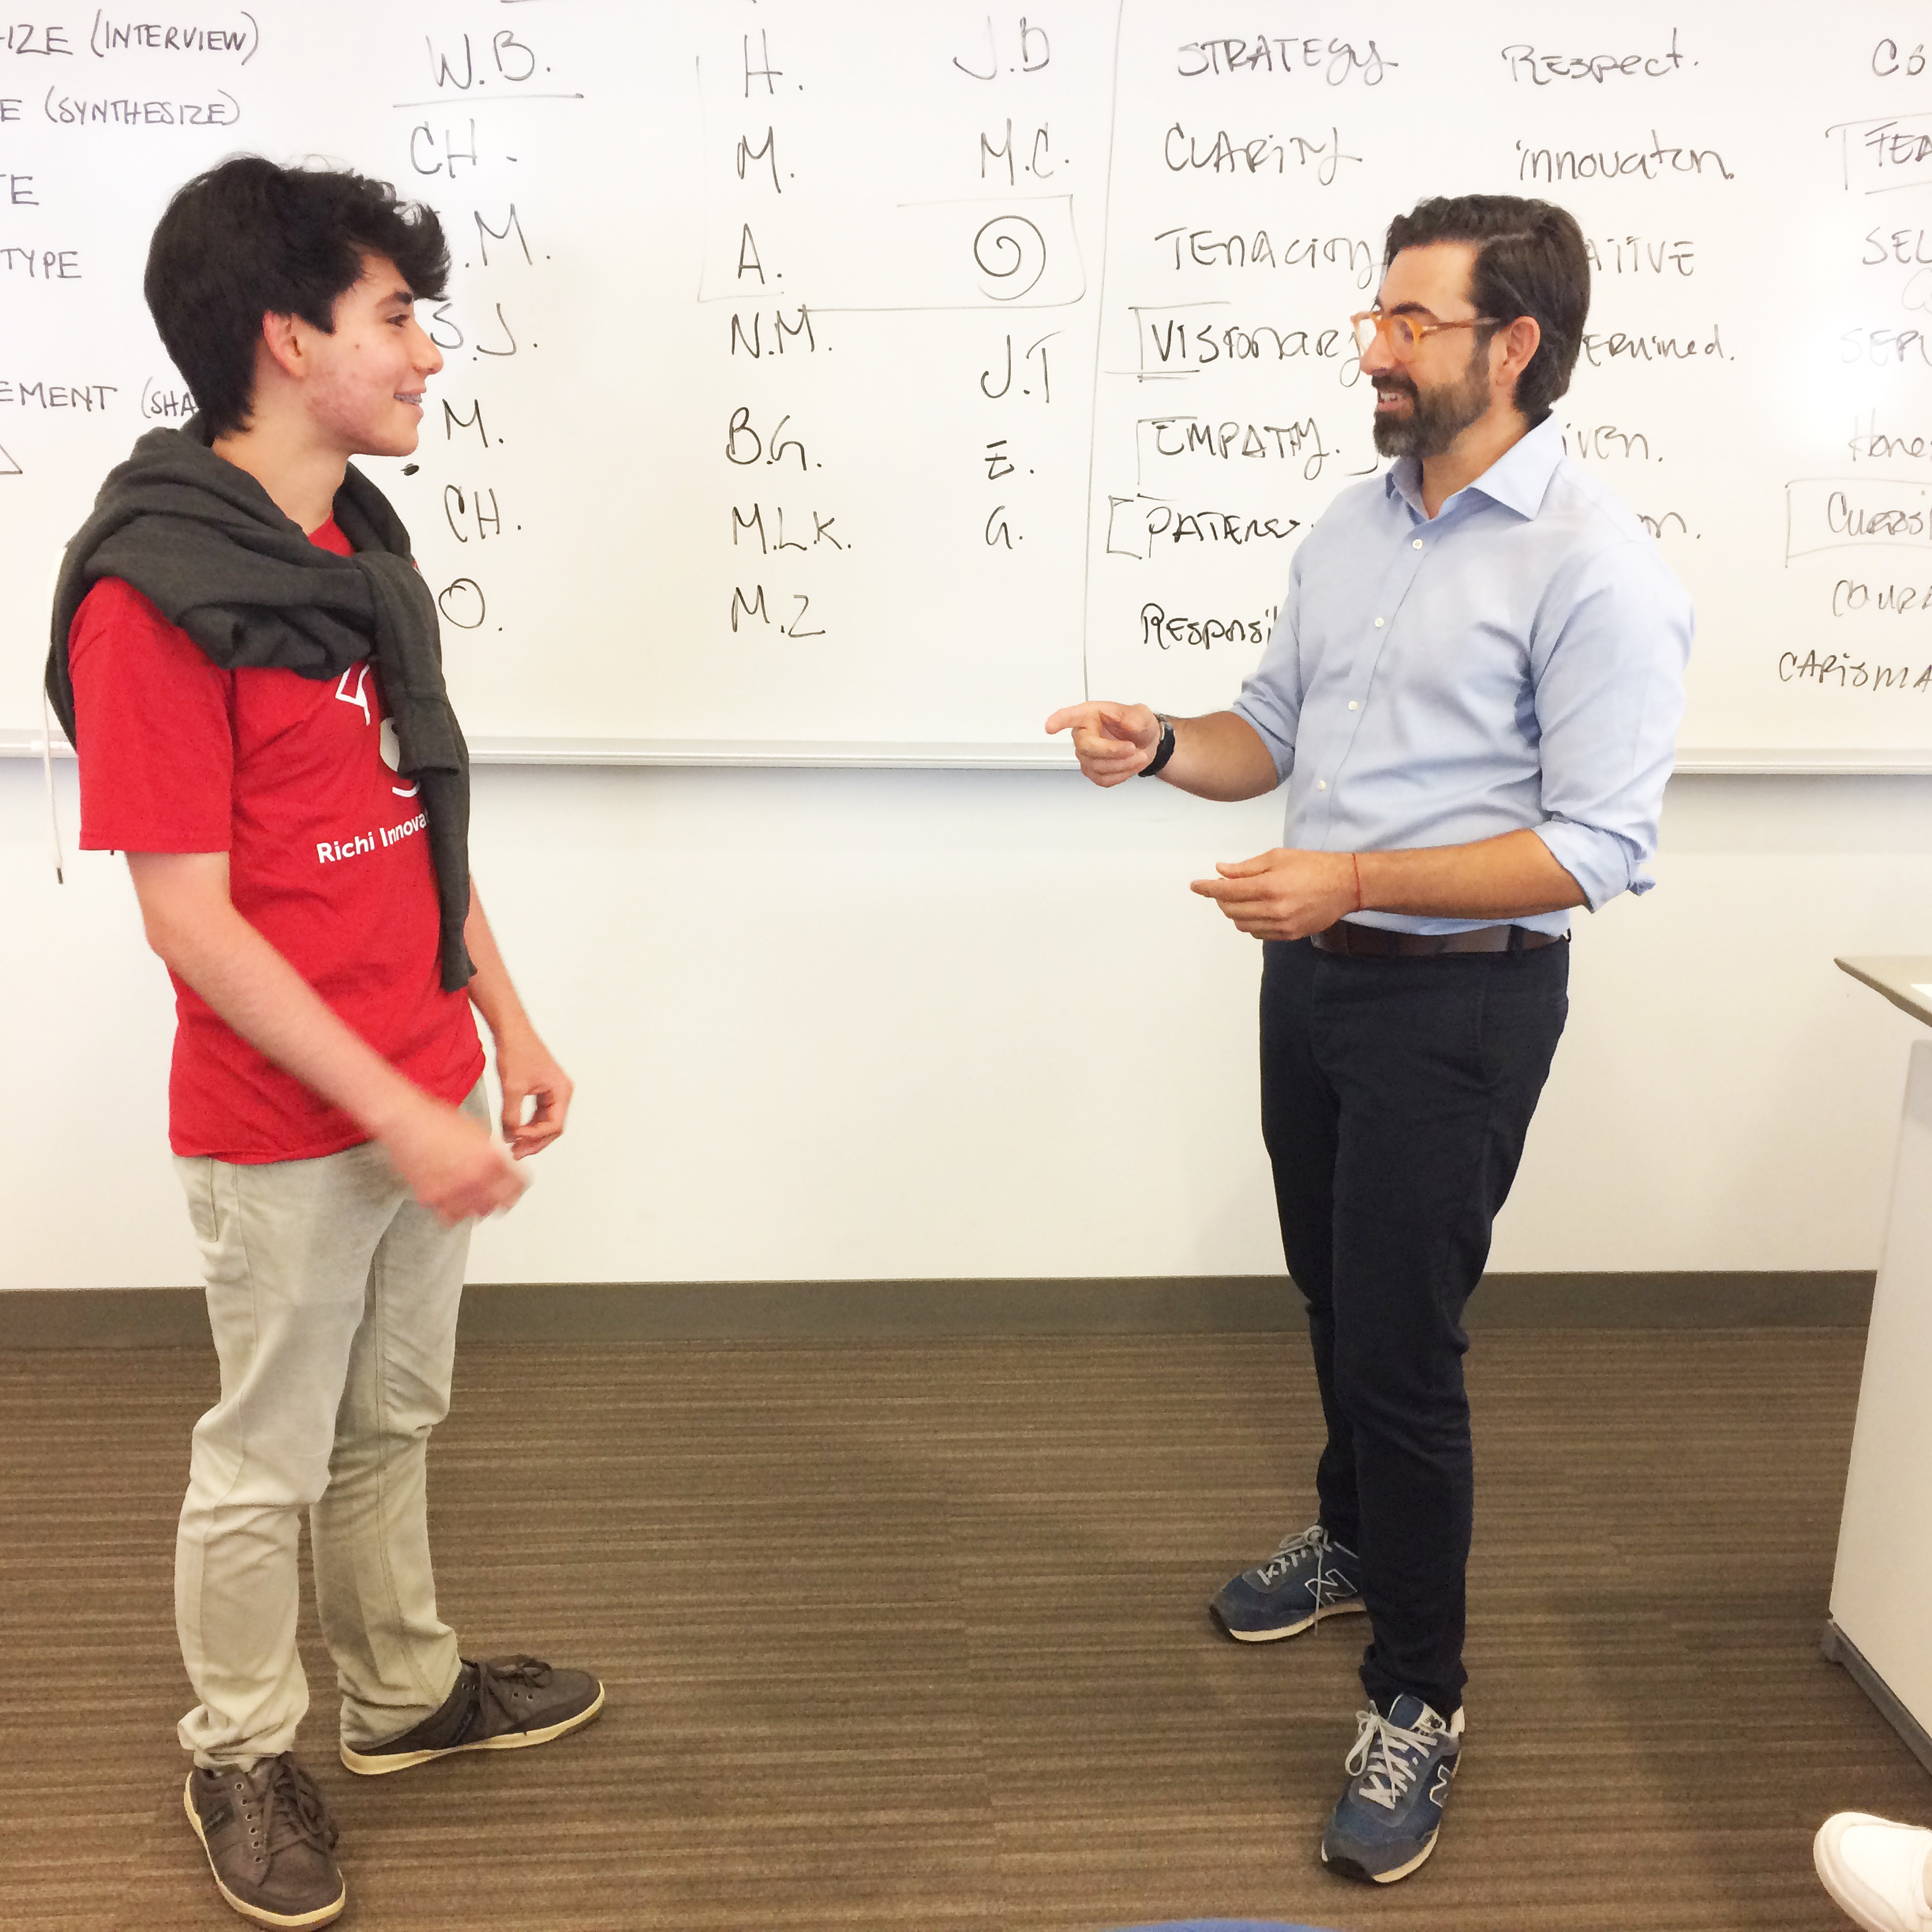 Javier Prieta practices communication skills with Santiago, exemplifying both good and bad habits for the Innovators